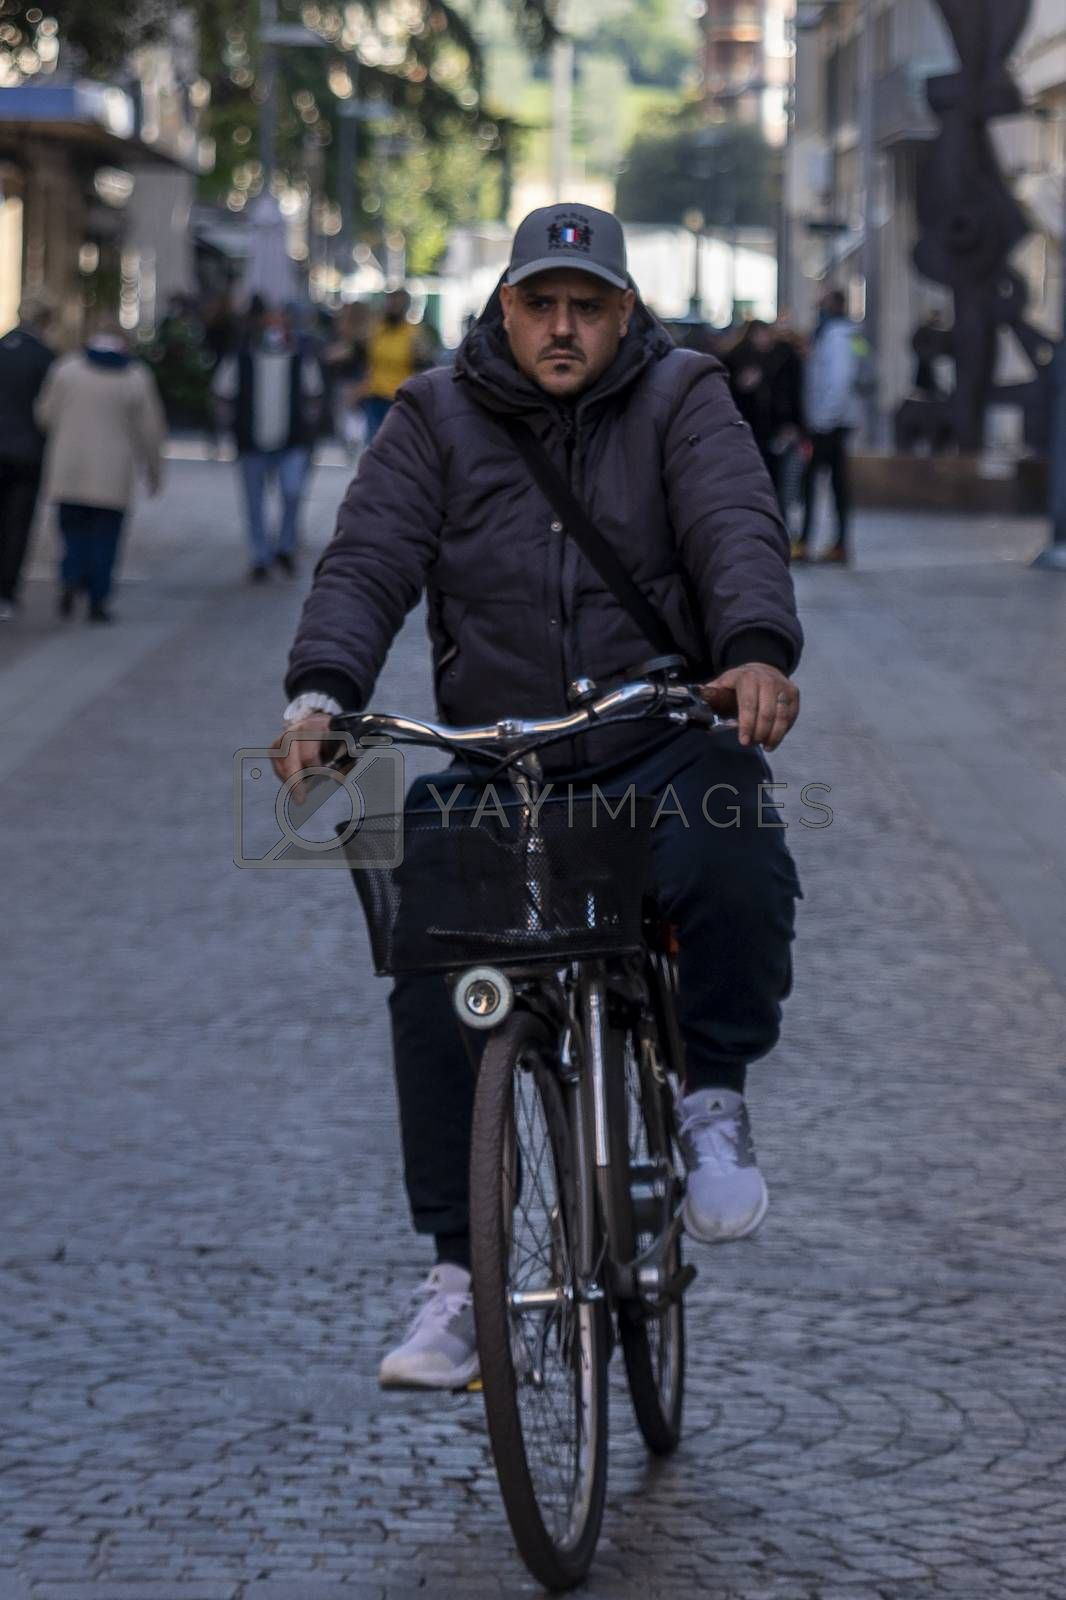 terni,italy october 21 2020:man on bicycle in city center